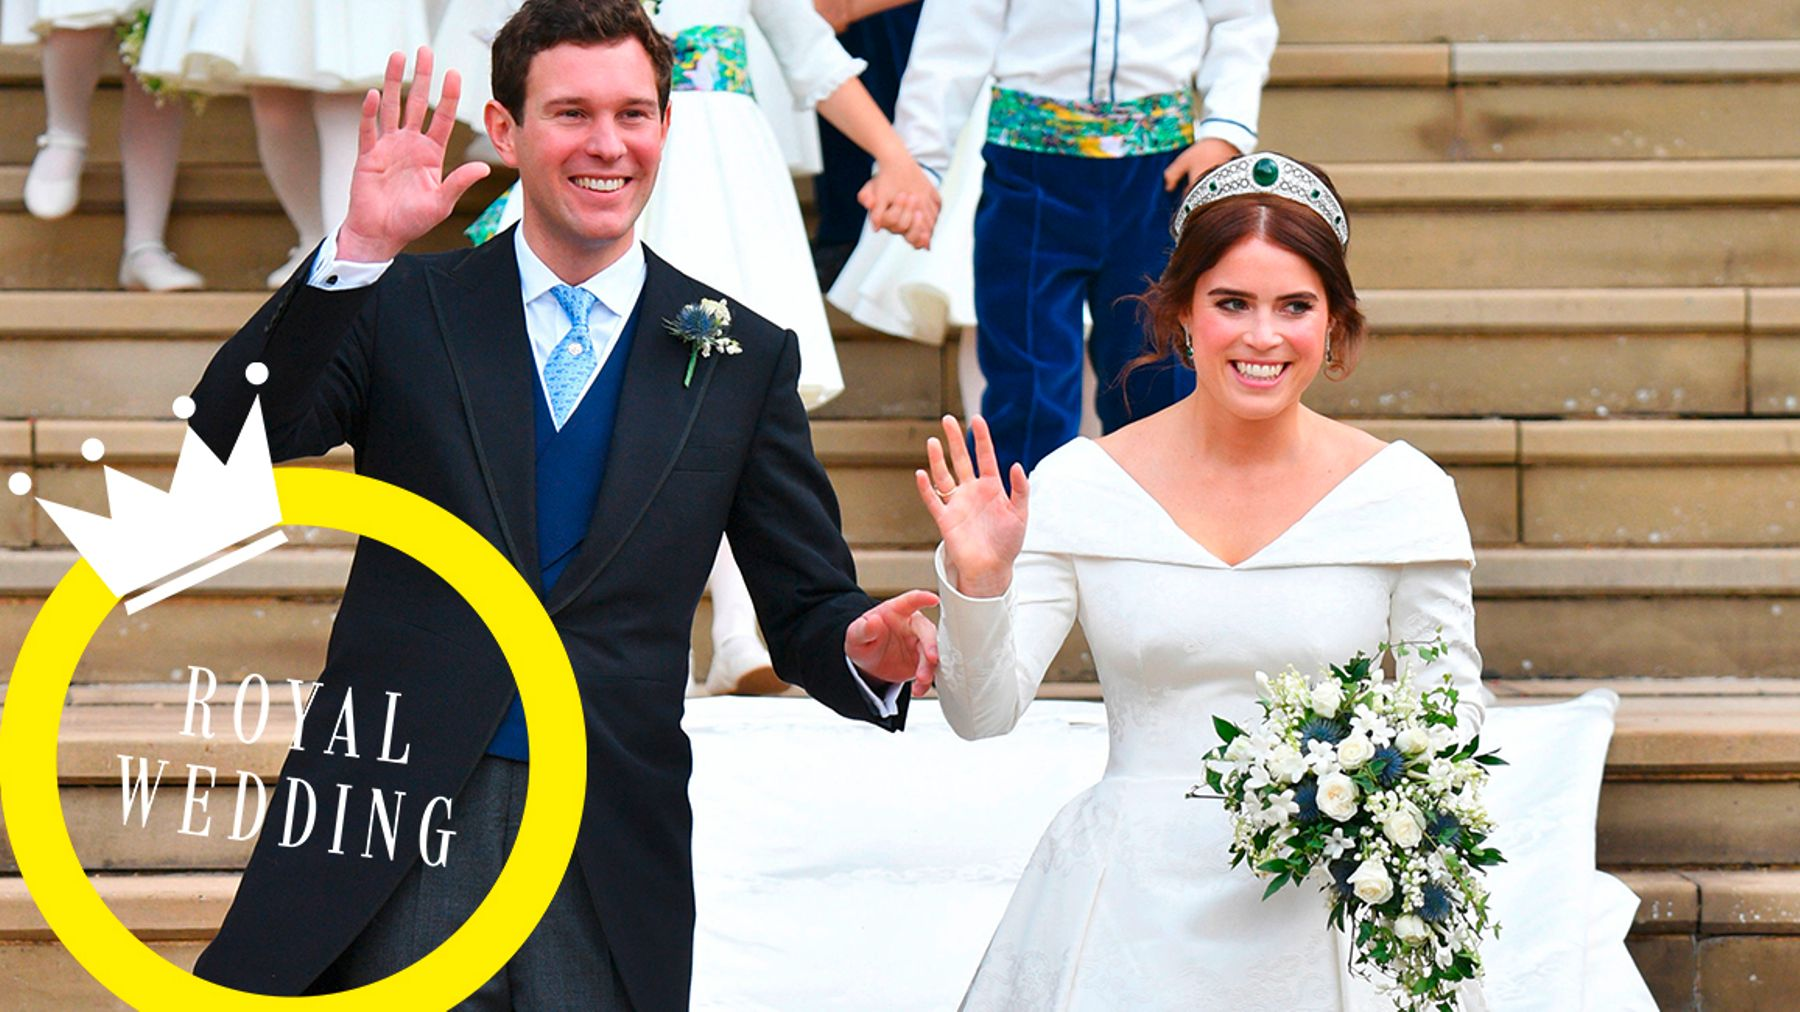 Princess Eugenie Wedding.Princess Eugenie And Jack Brooksbank S Wedding As It Happens Grazia